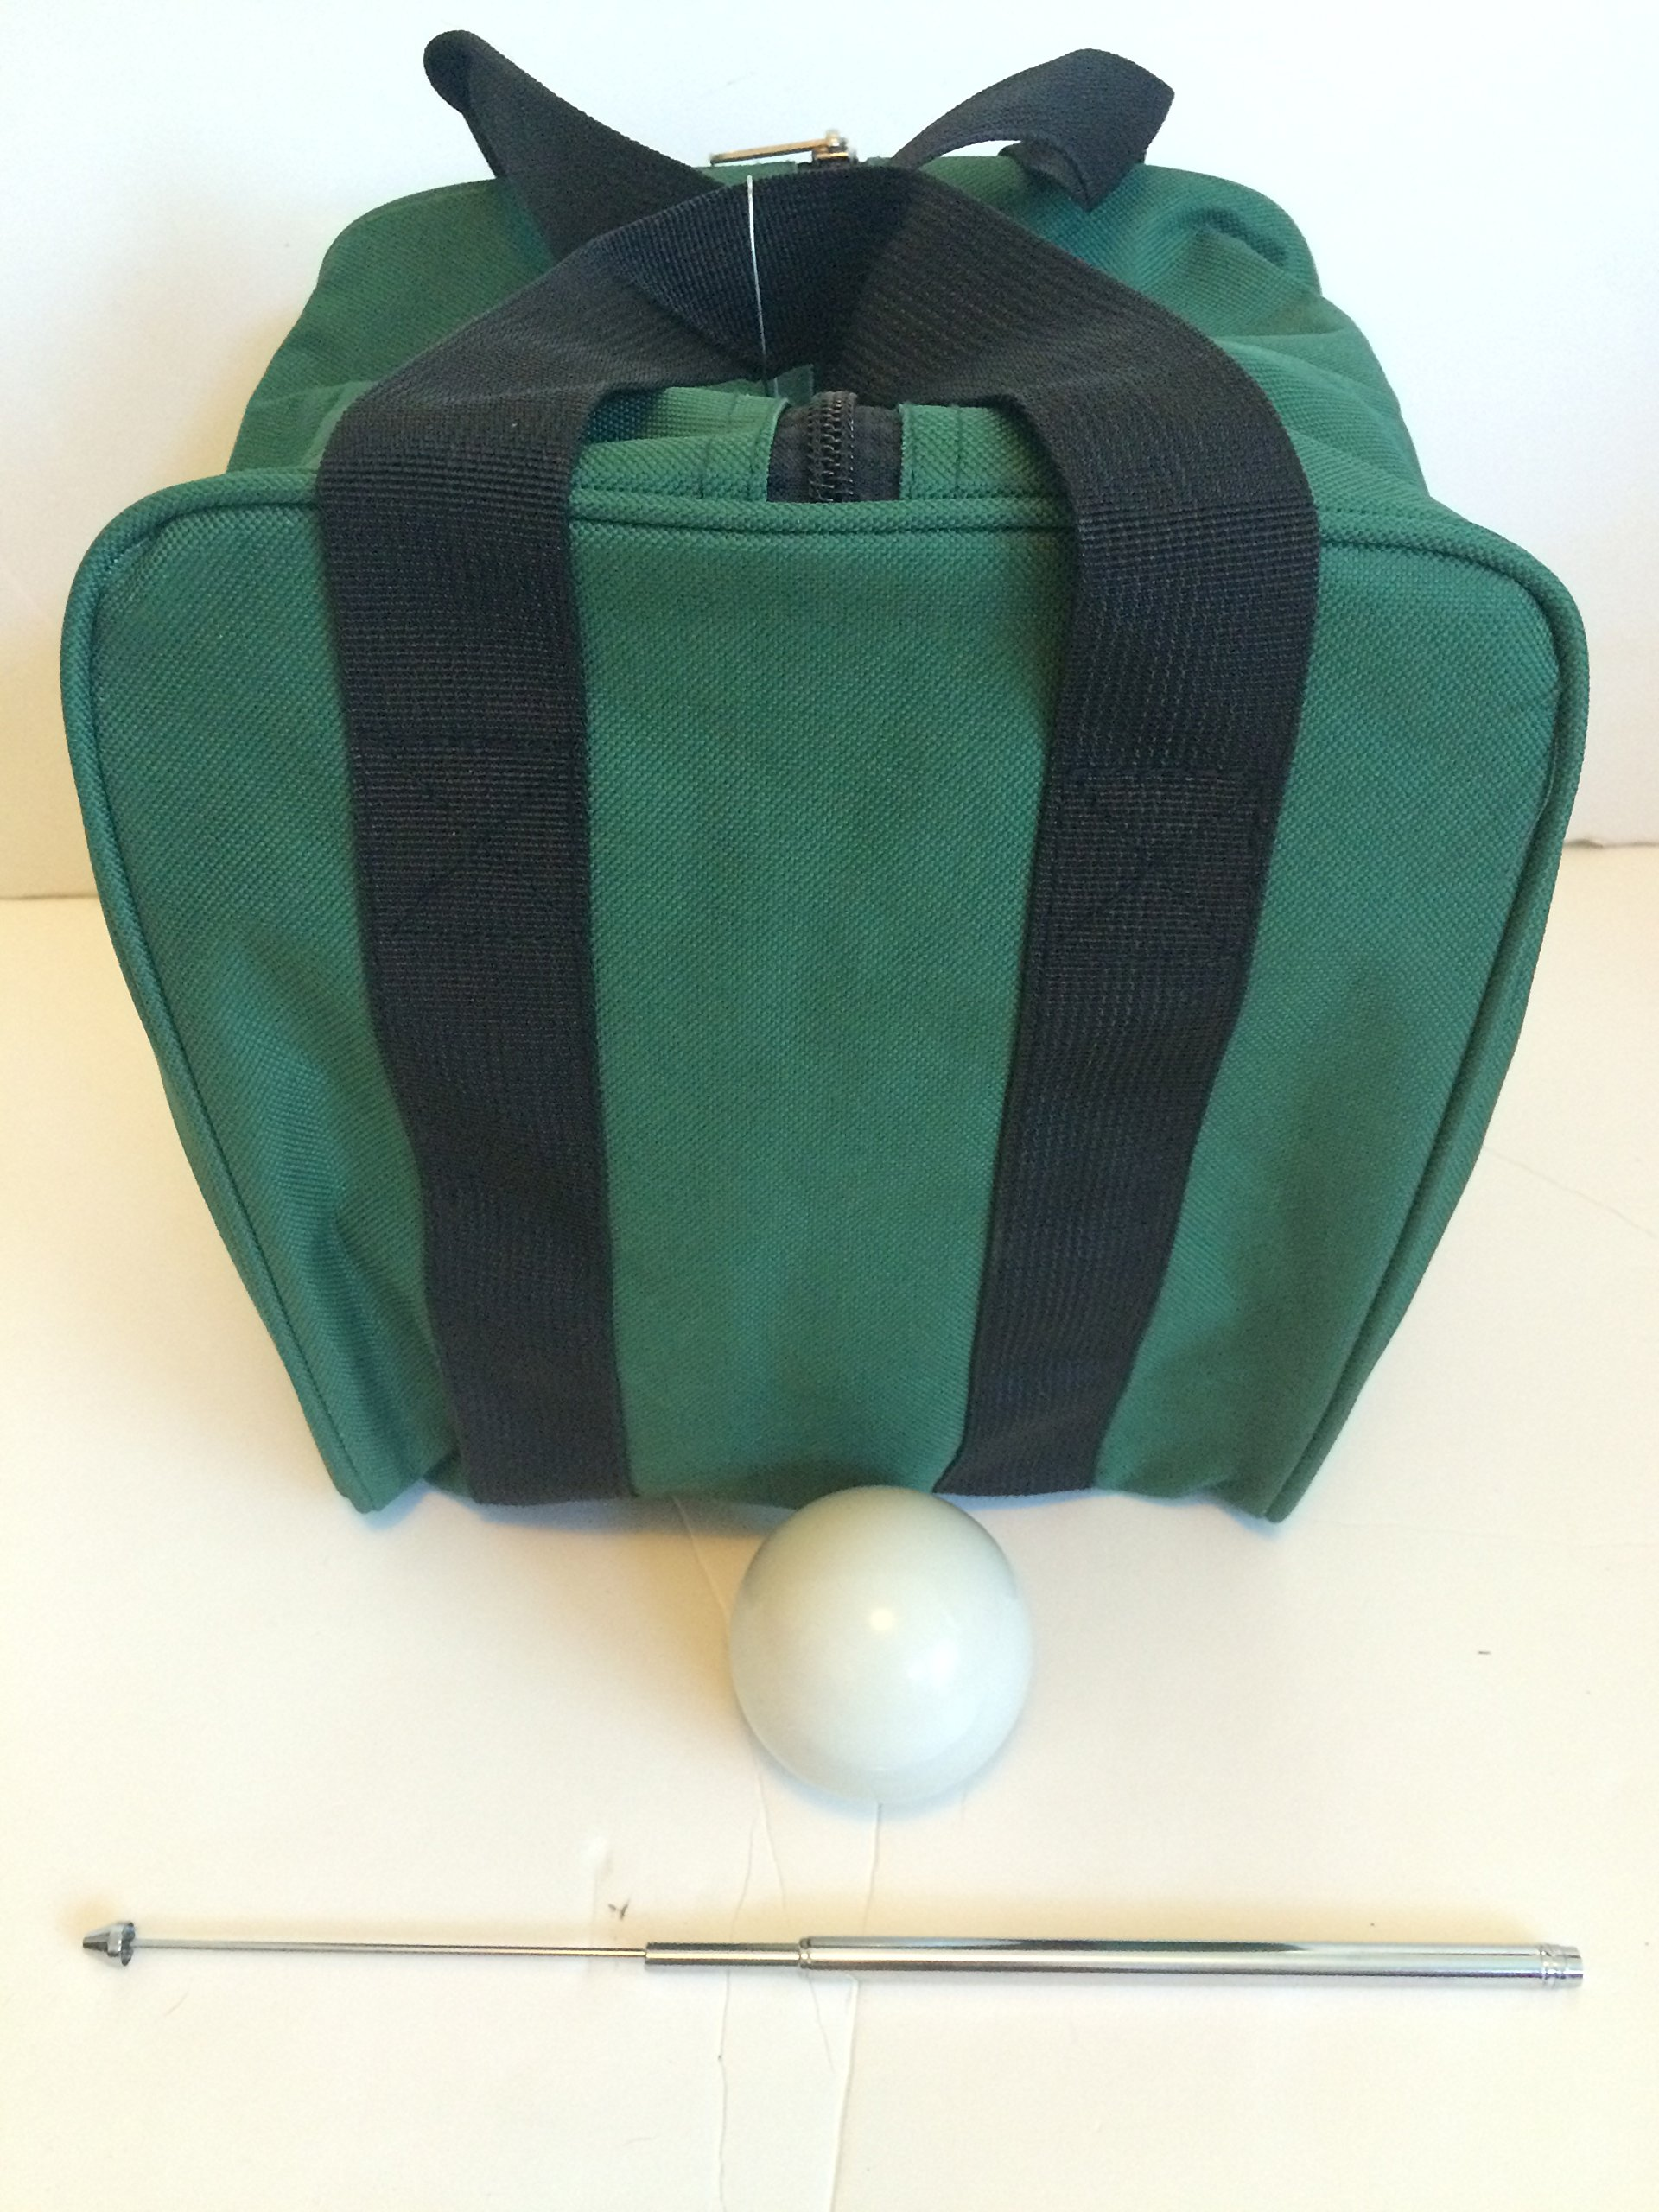 Unique Bocce Accessories Package - Extra Heavy Duty Nylon Bocce Bag (Green with Black Handles), White pallina, Extendable Measuring Device